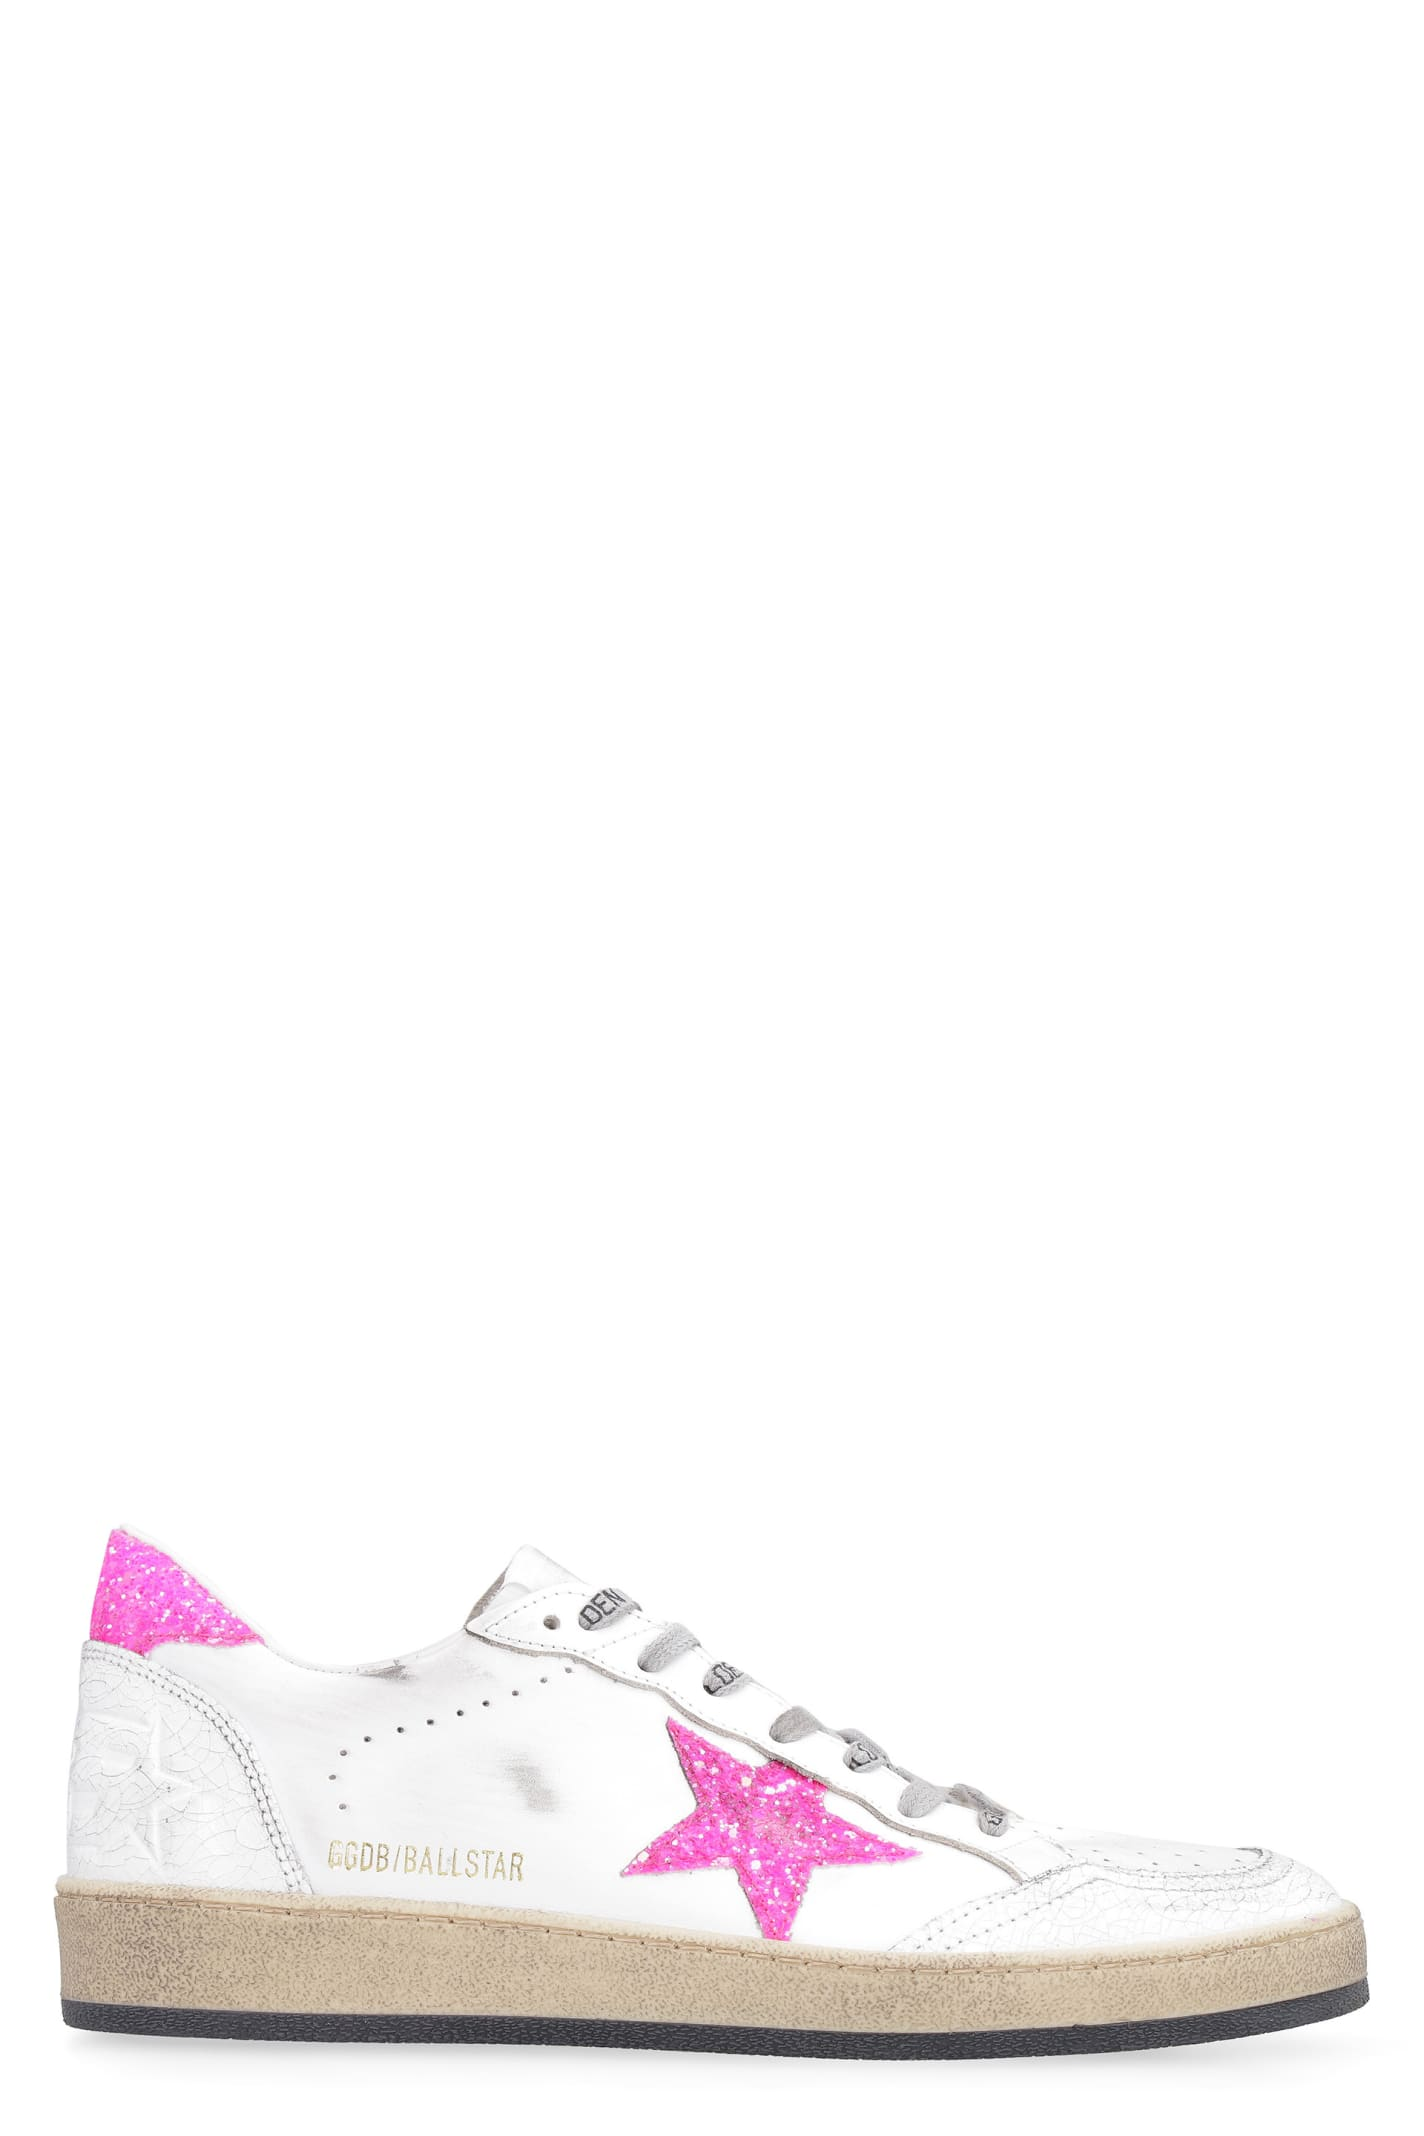 Buy Golden Goose Ball Star Leather Low-top Sneakers online, shop Golden Goose shoes with free shipping